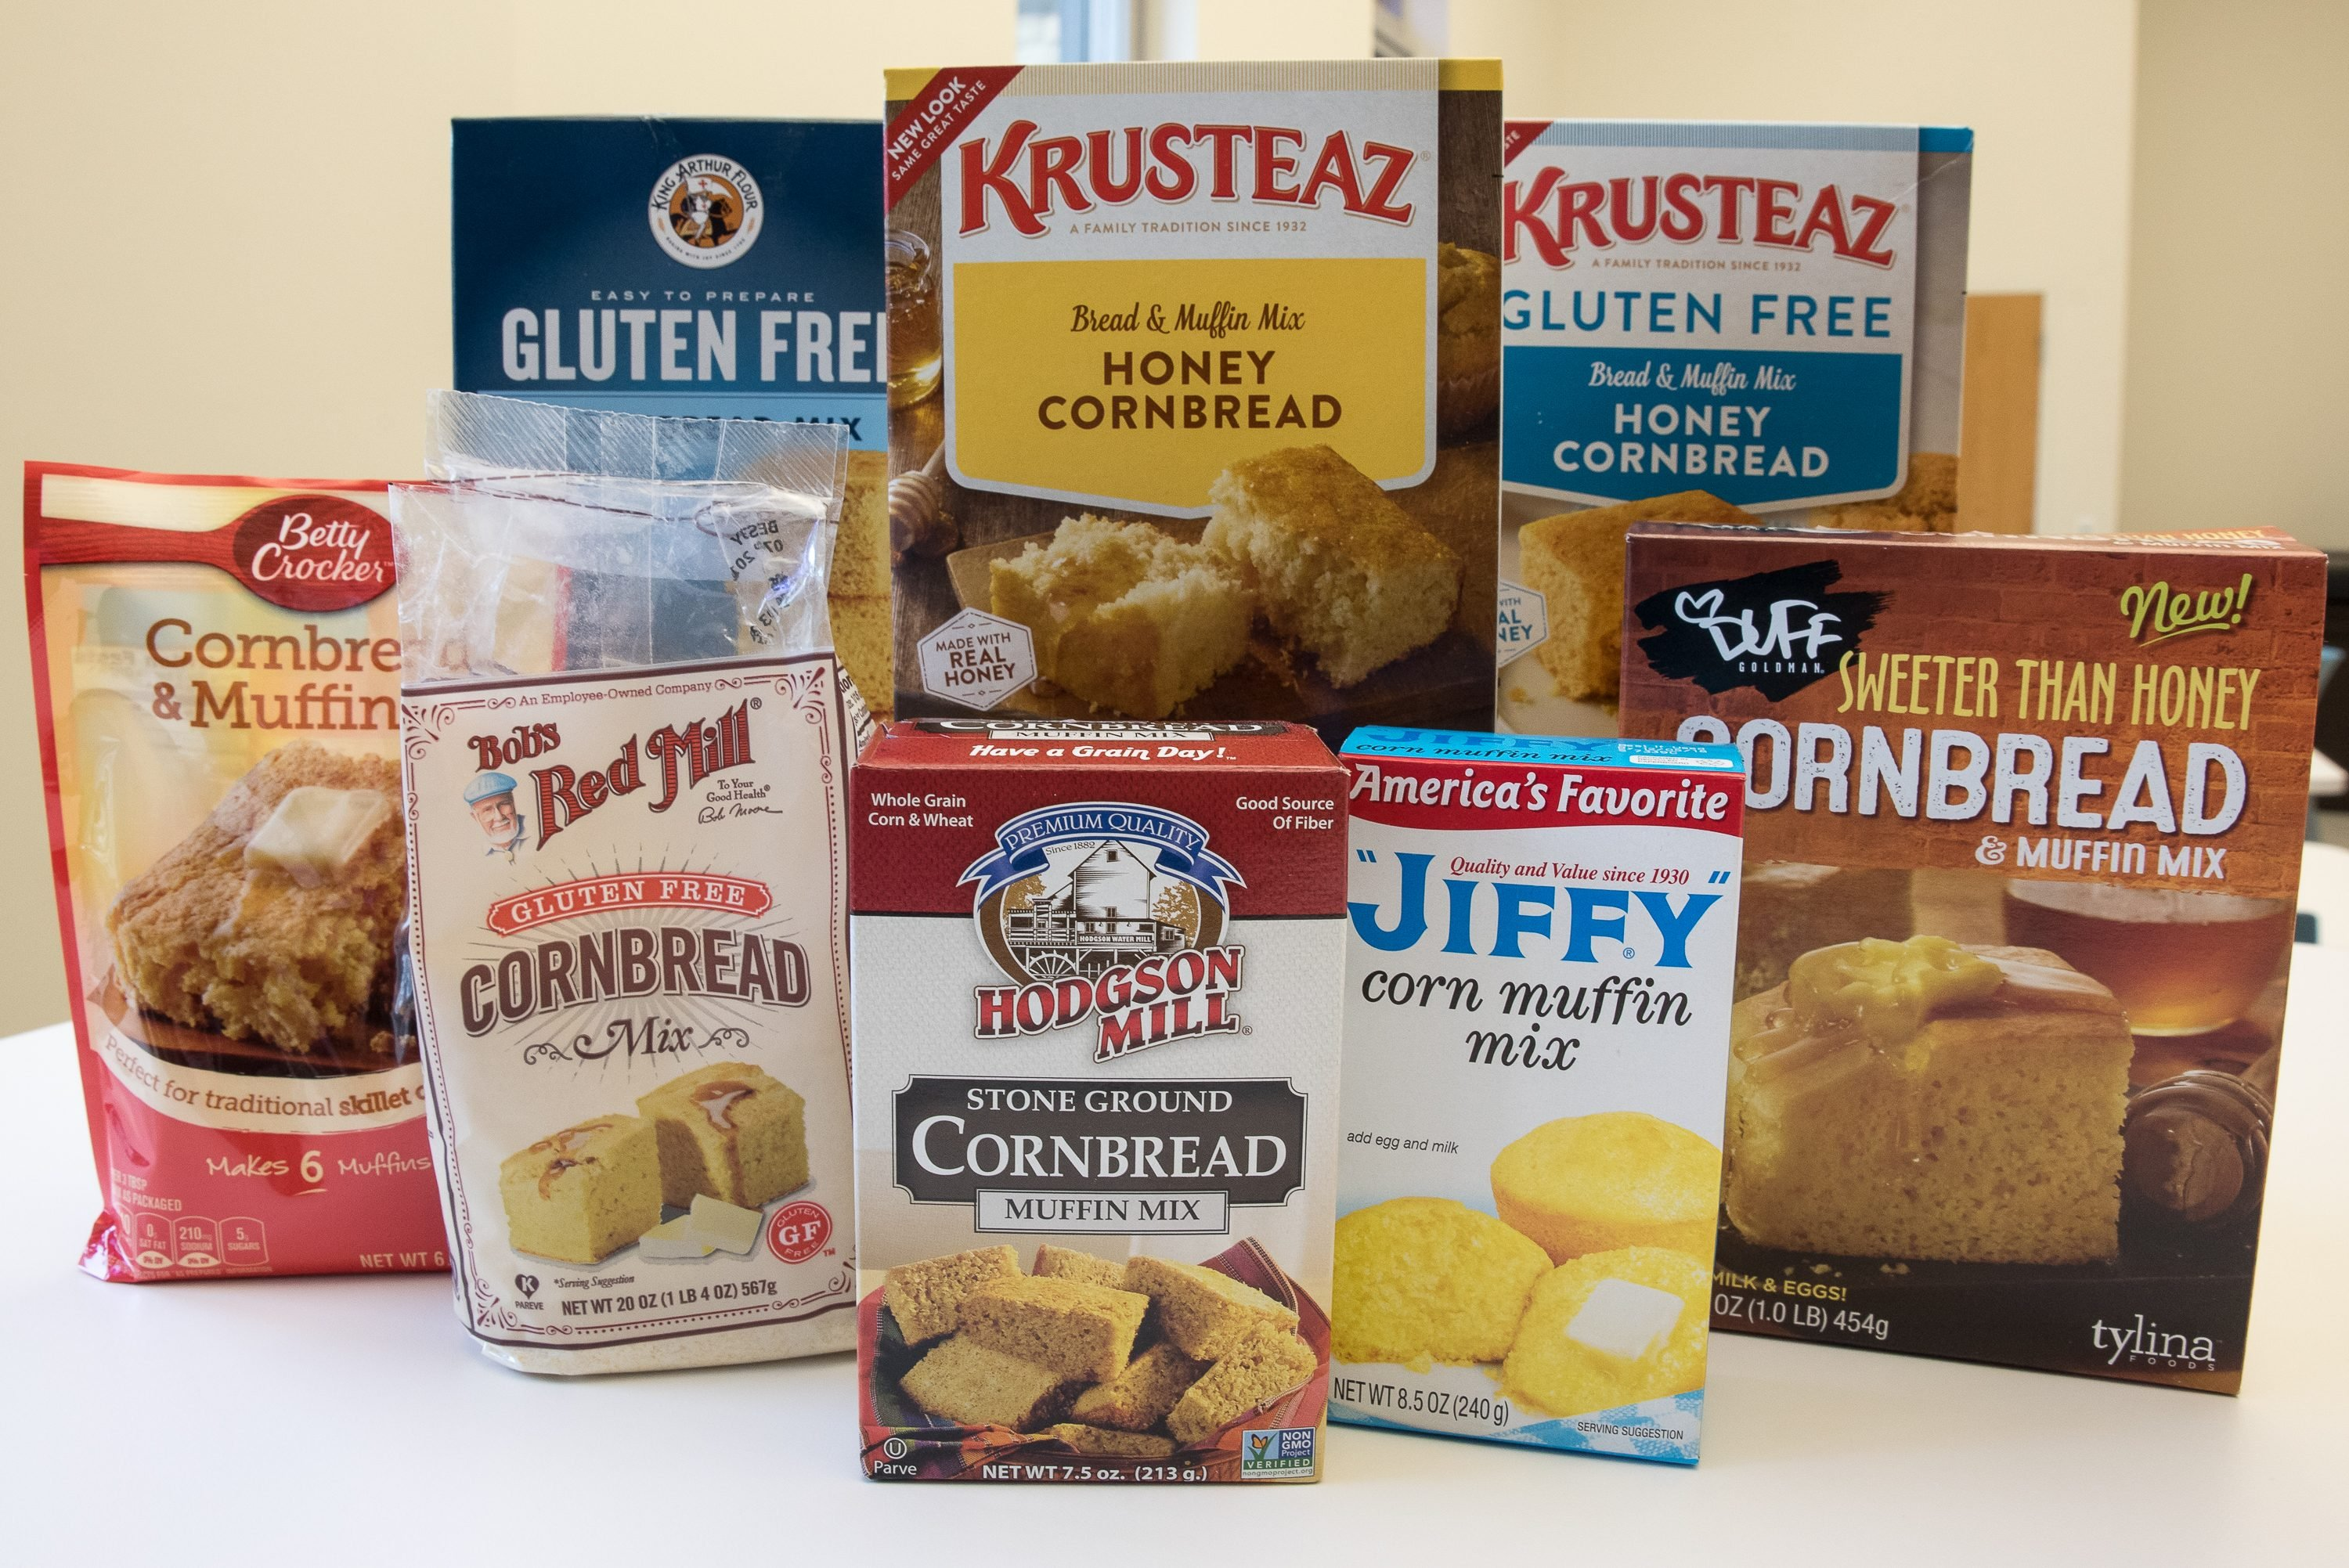 We Found The Best Cornbread Mix Our Pick Will Shock You